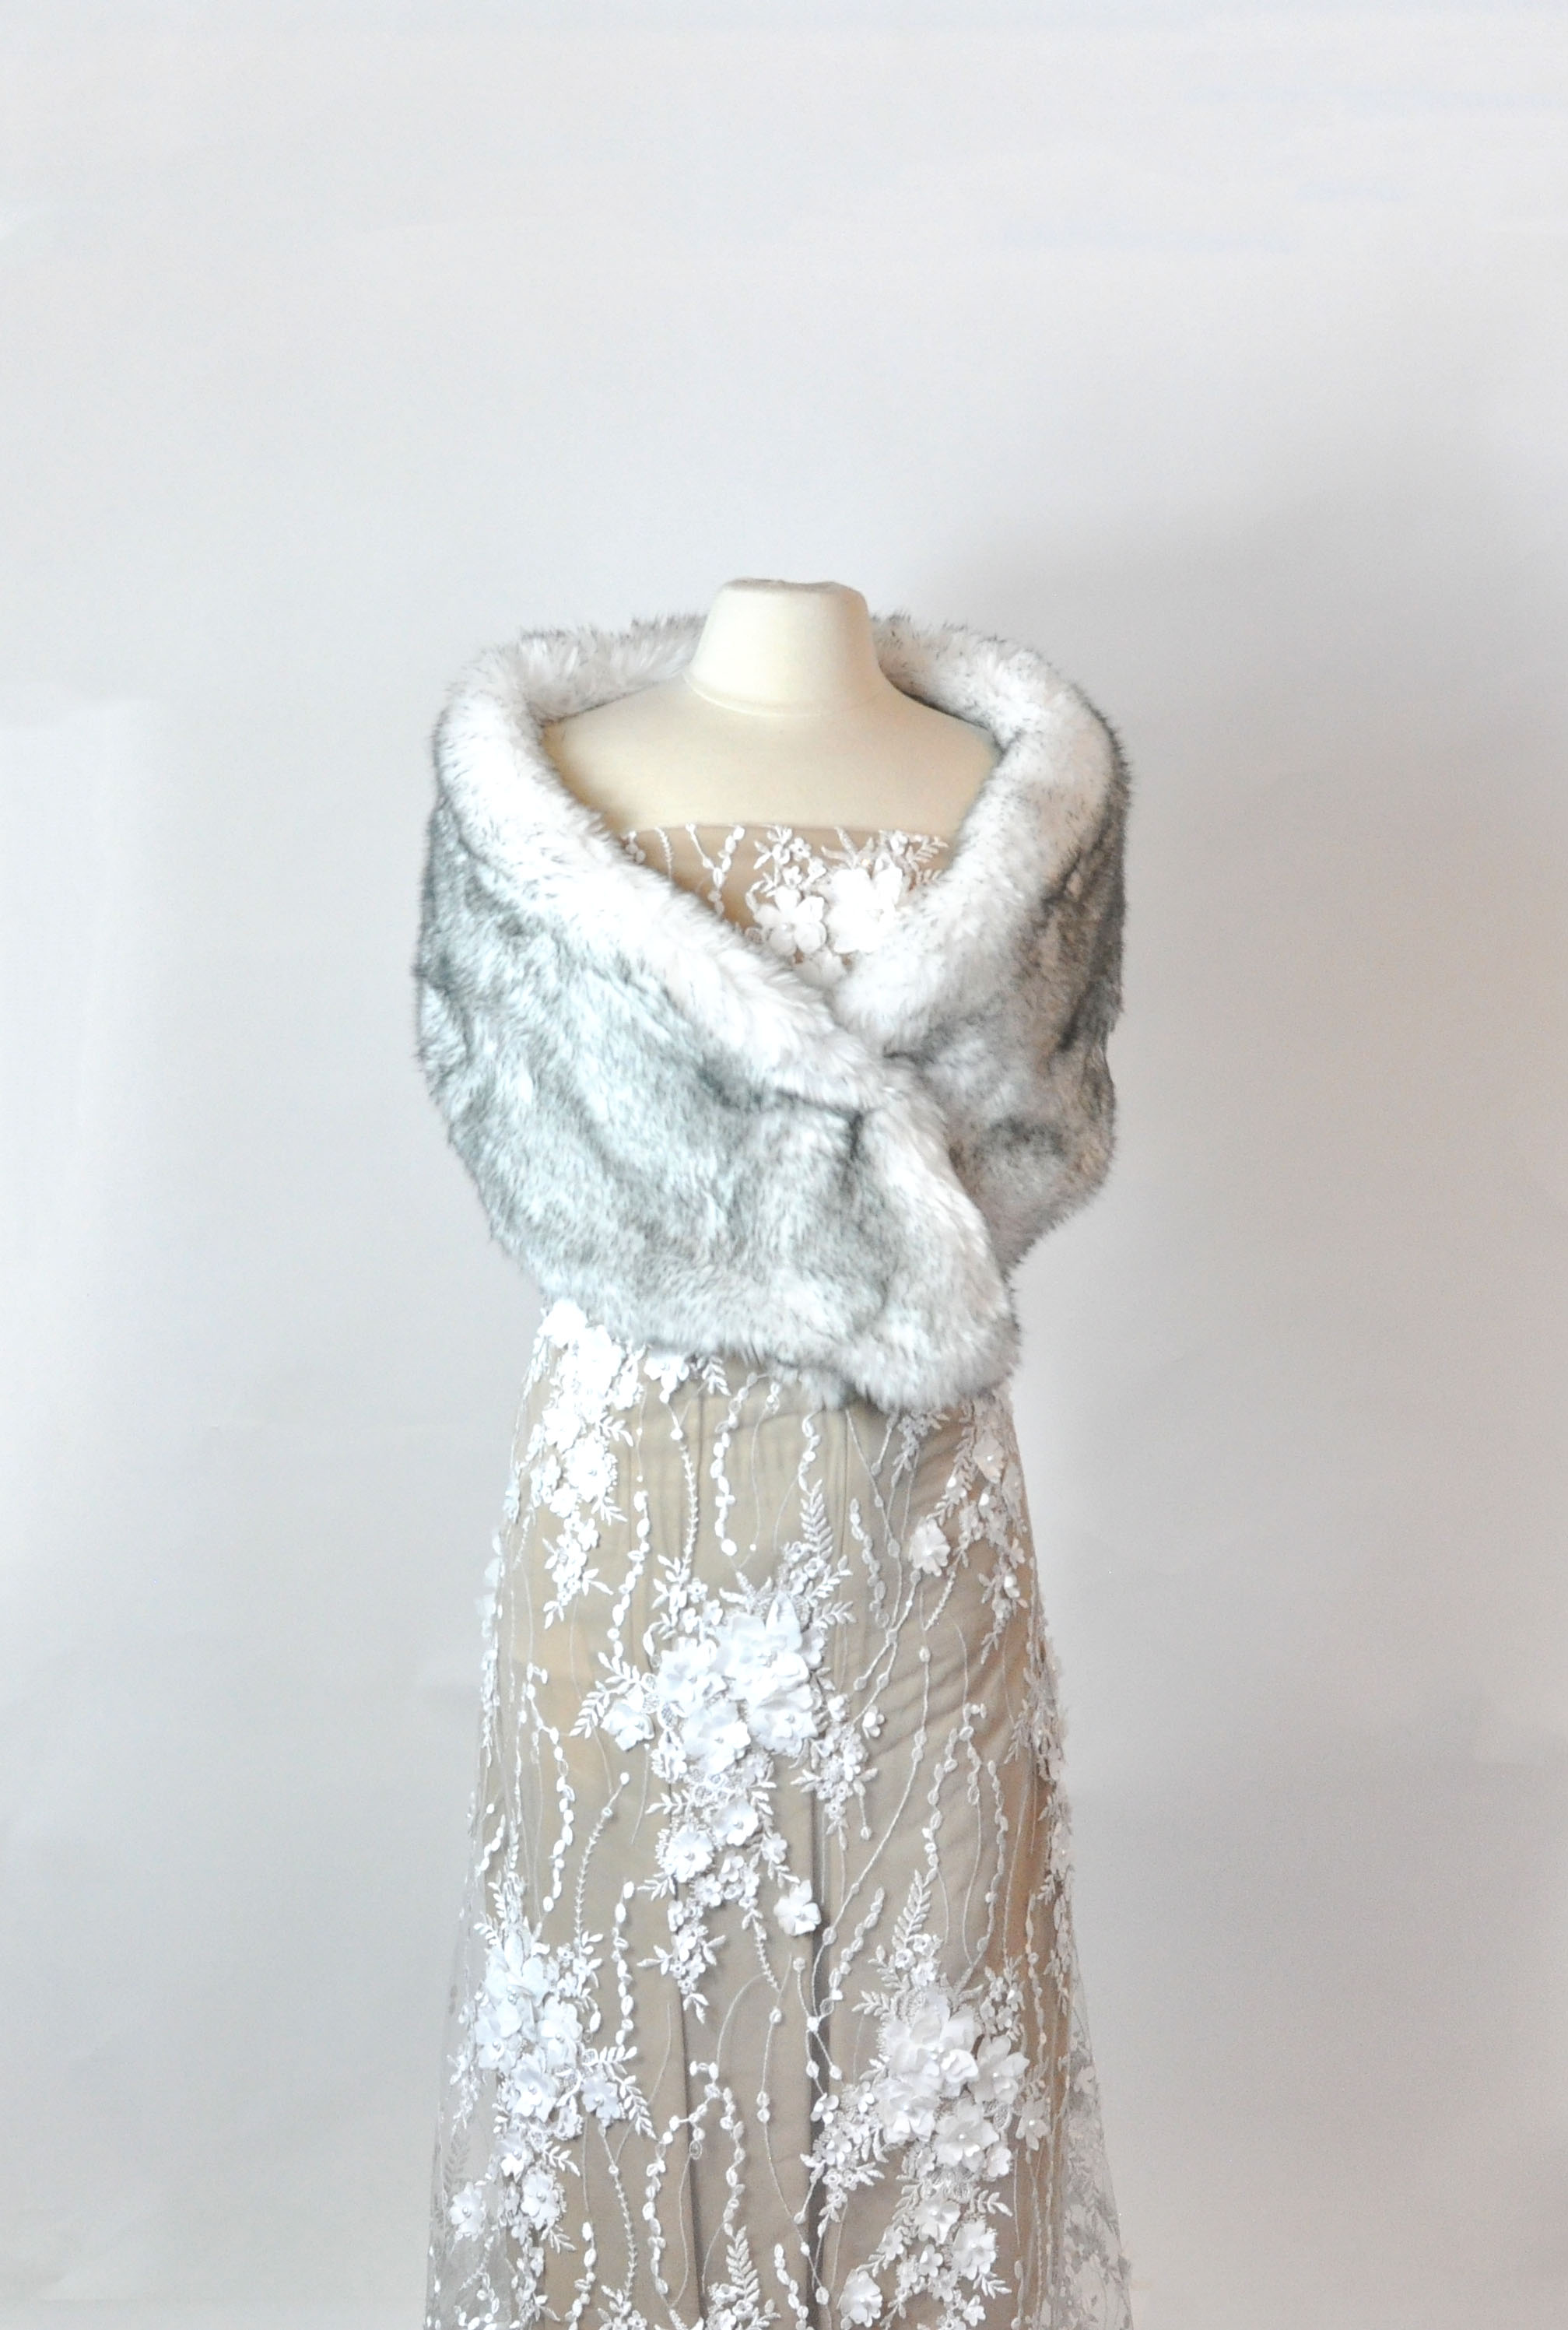 DIY faux fur stole. Takes less than an hour and looks beautiful for winter weddings of vintage ensembles. #diyfashion | Faux Fur Stole Pattern by popular Utah sewing blog, Kara Metta: image of a faux fur stole on a mannequin.